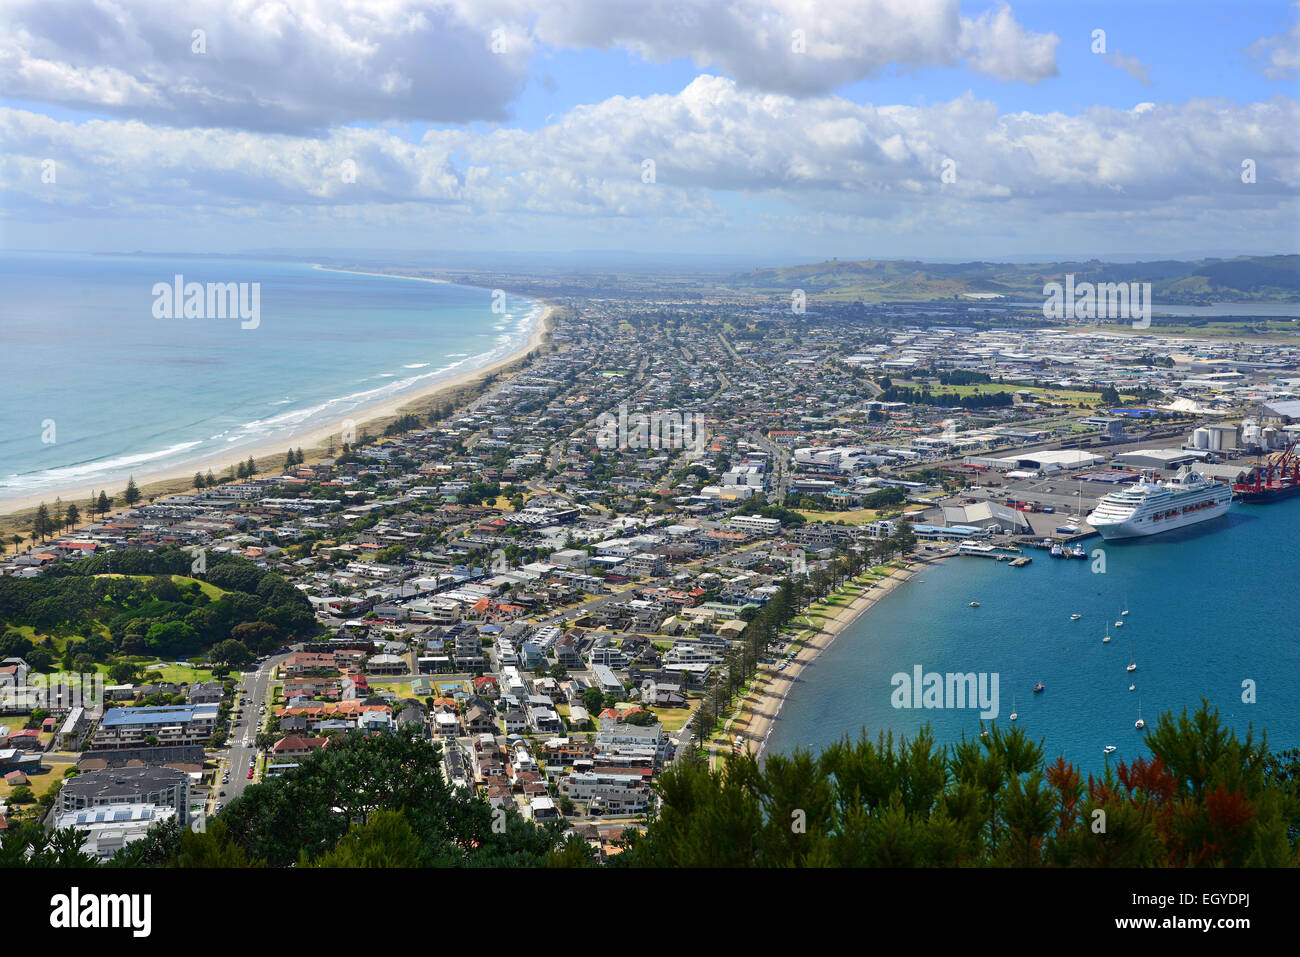 View of the town of Tauranga from the top of Mount Maunganui in New Zealand's North Island. - Stock Image